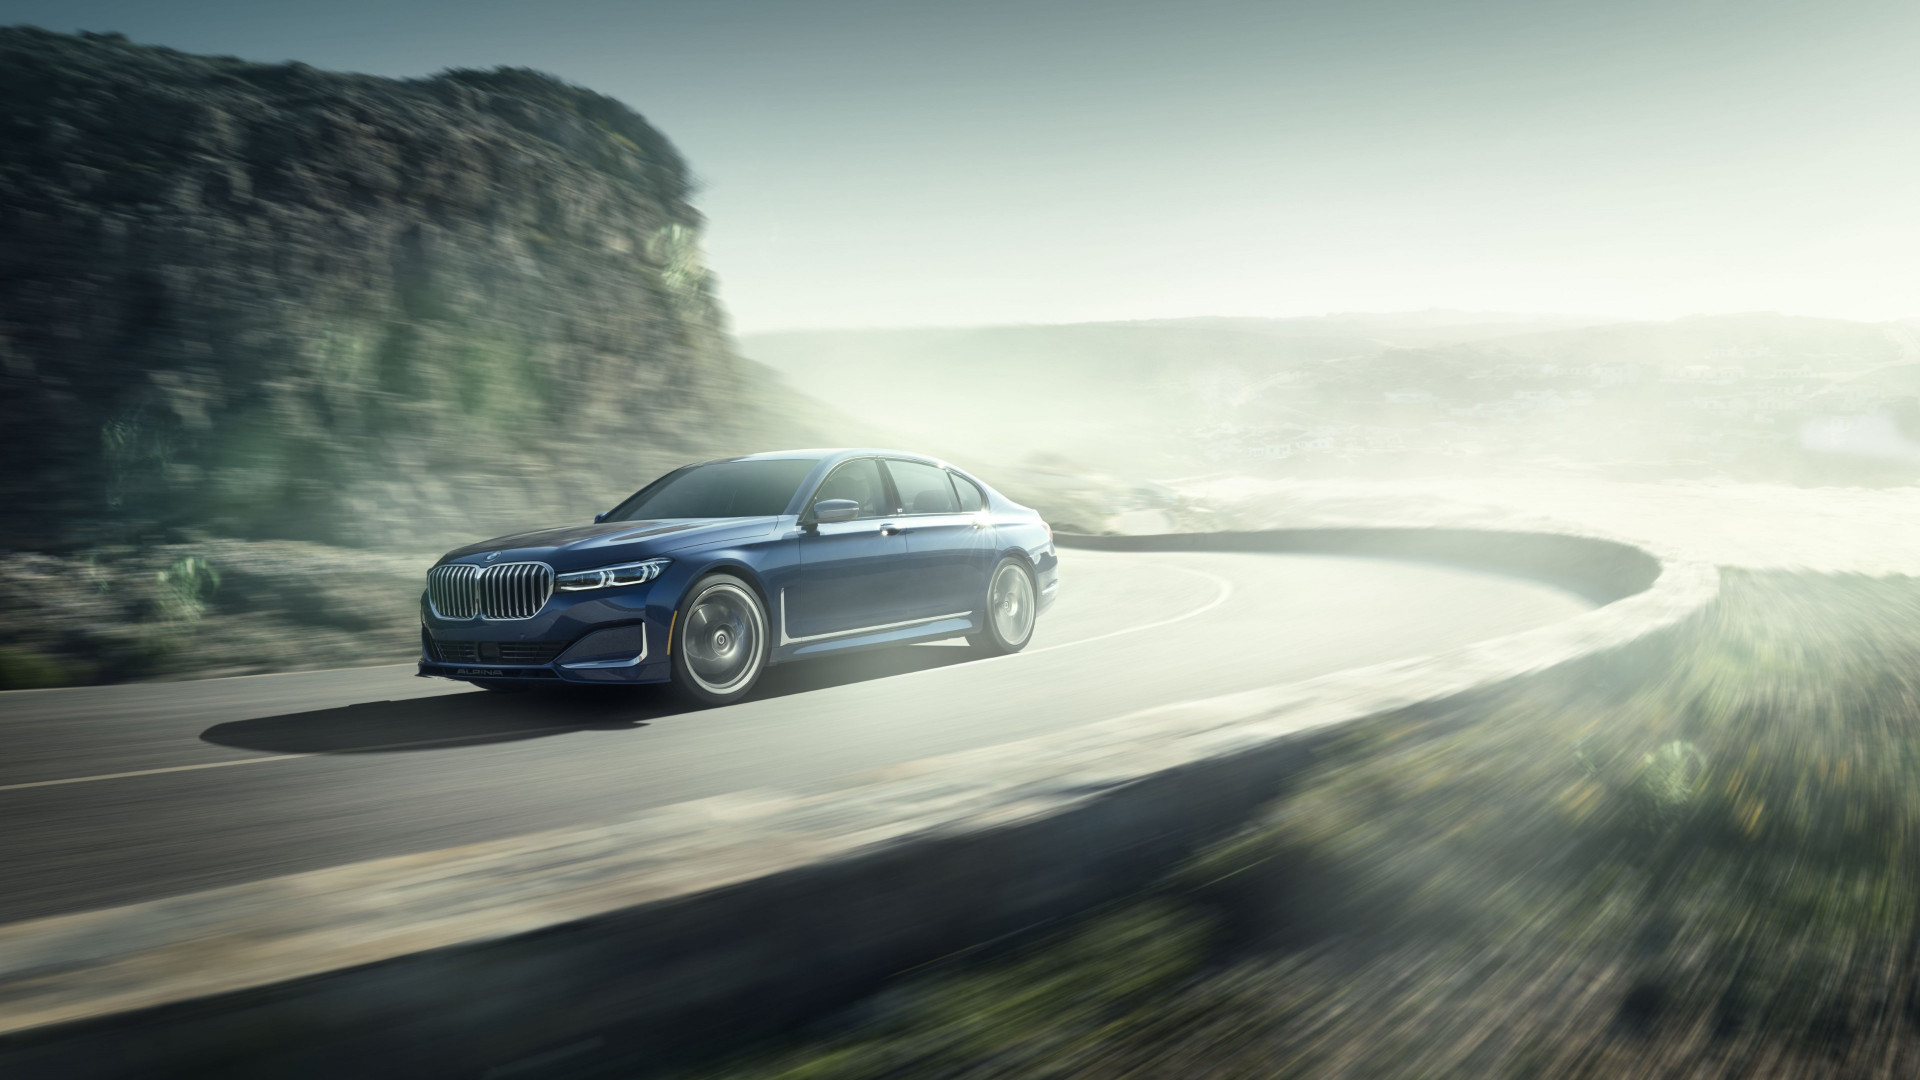 BMW Alpina B7 2019 wallpaper 1920x1080